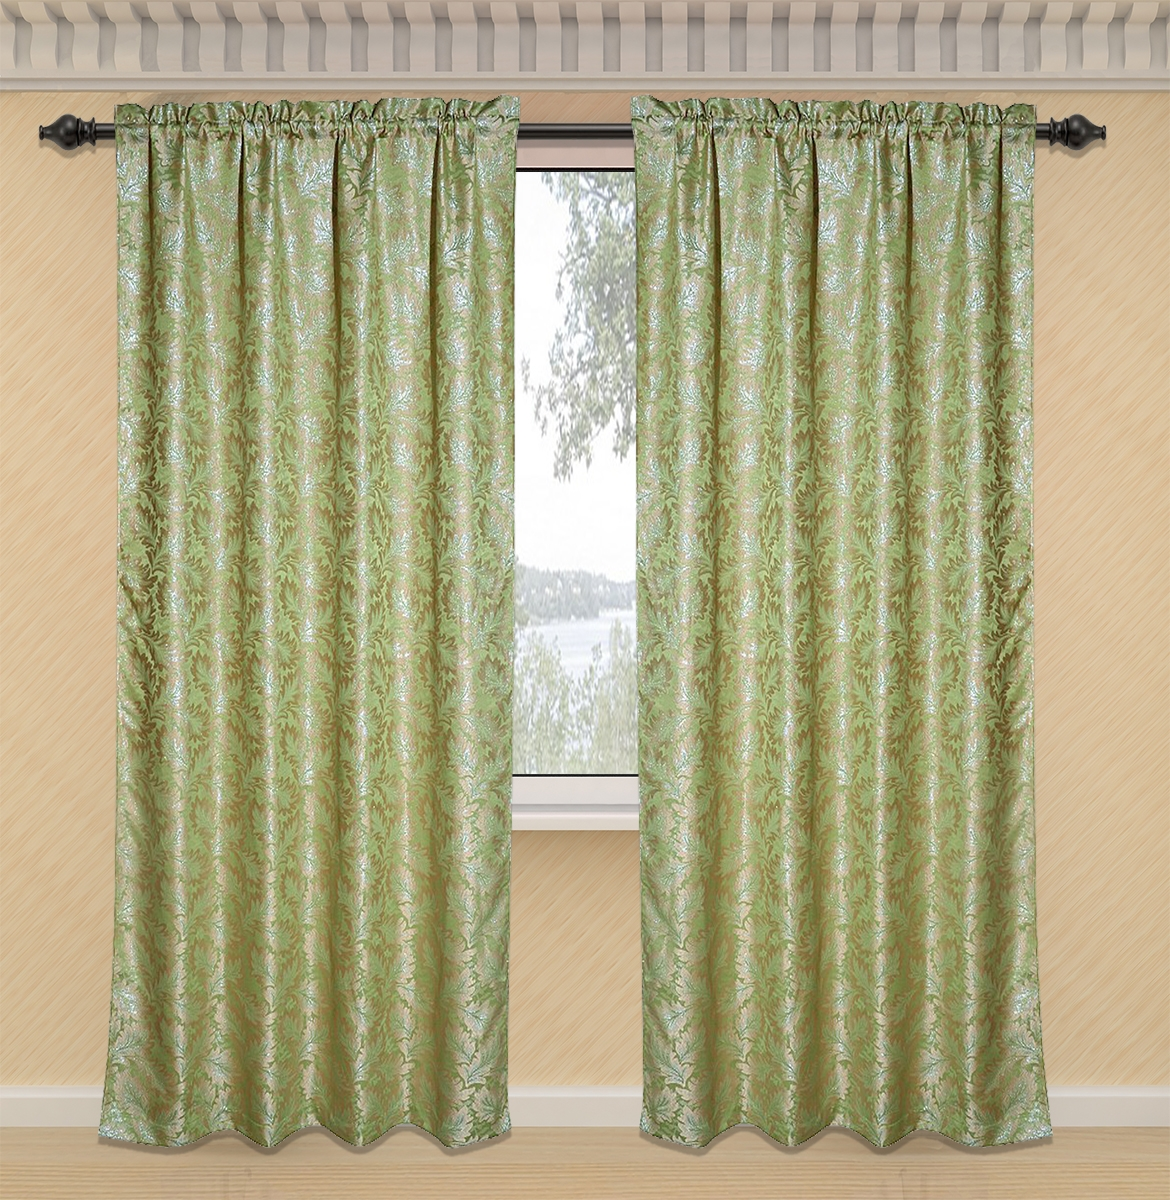 Kitchen Curtains Sage Green Kitchen Curtains Inspiring Pertaining To Sage Green Kitchen Curtains (Image 12 of 25)